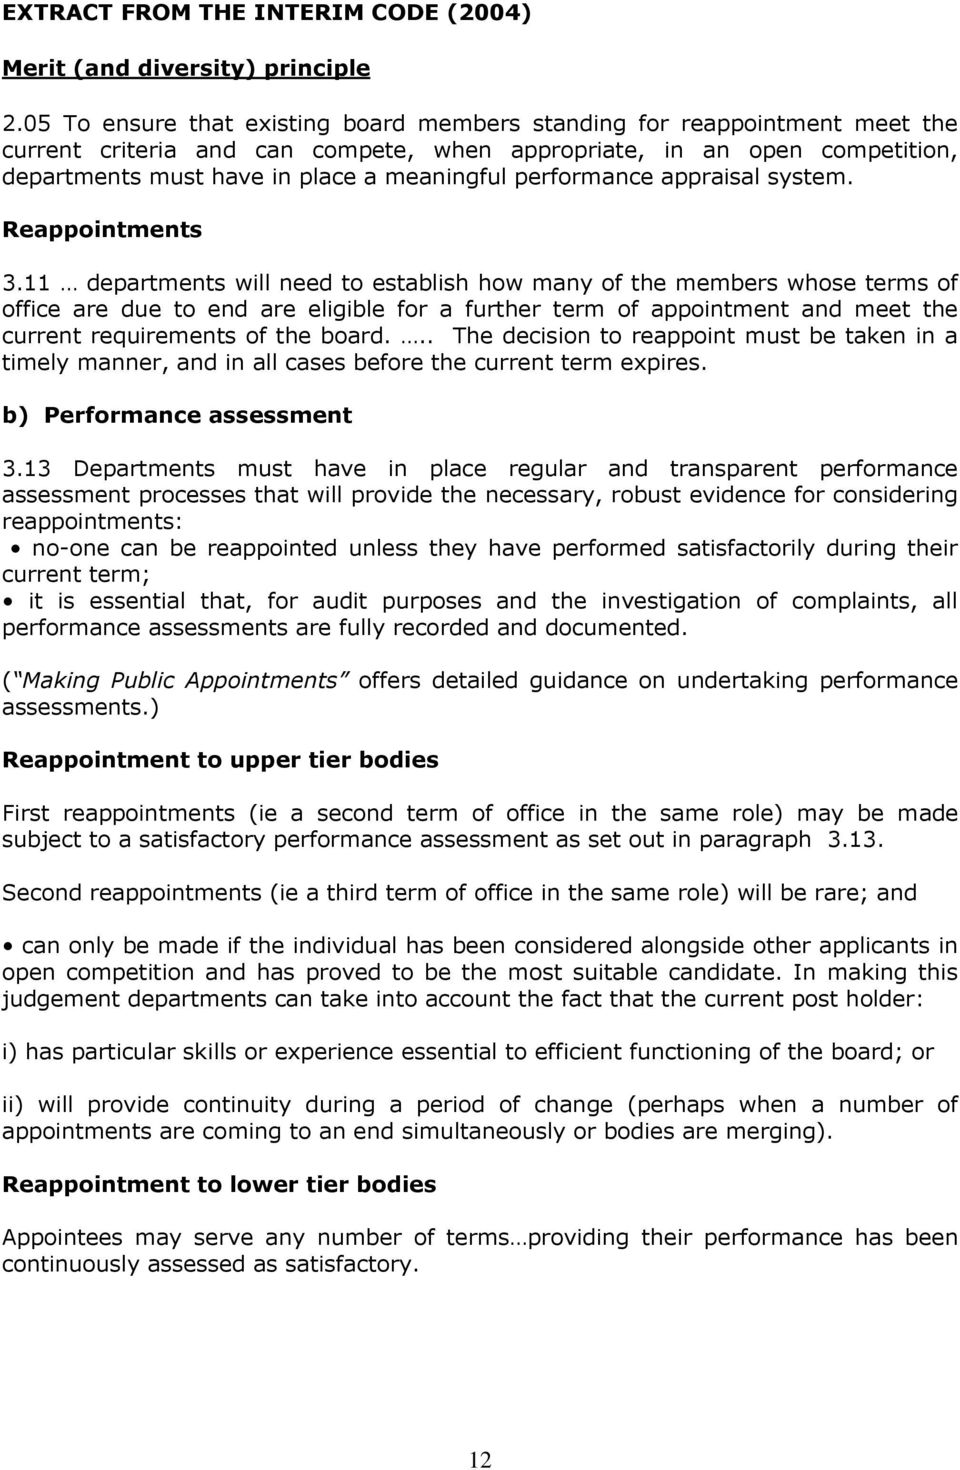 performance appraisal system. Reappointments 3.